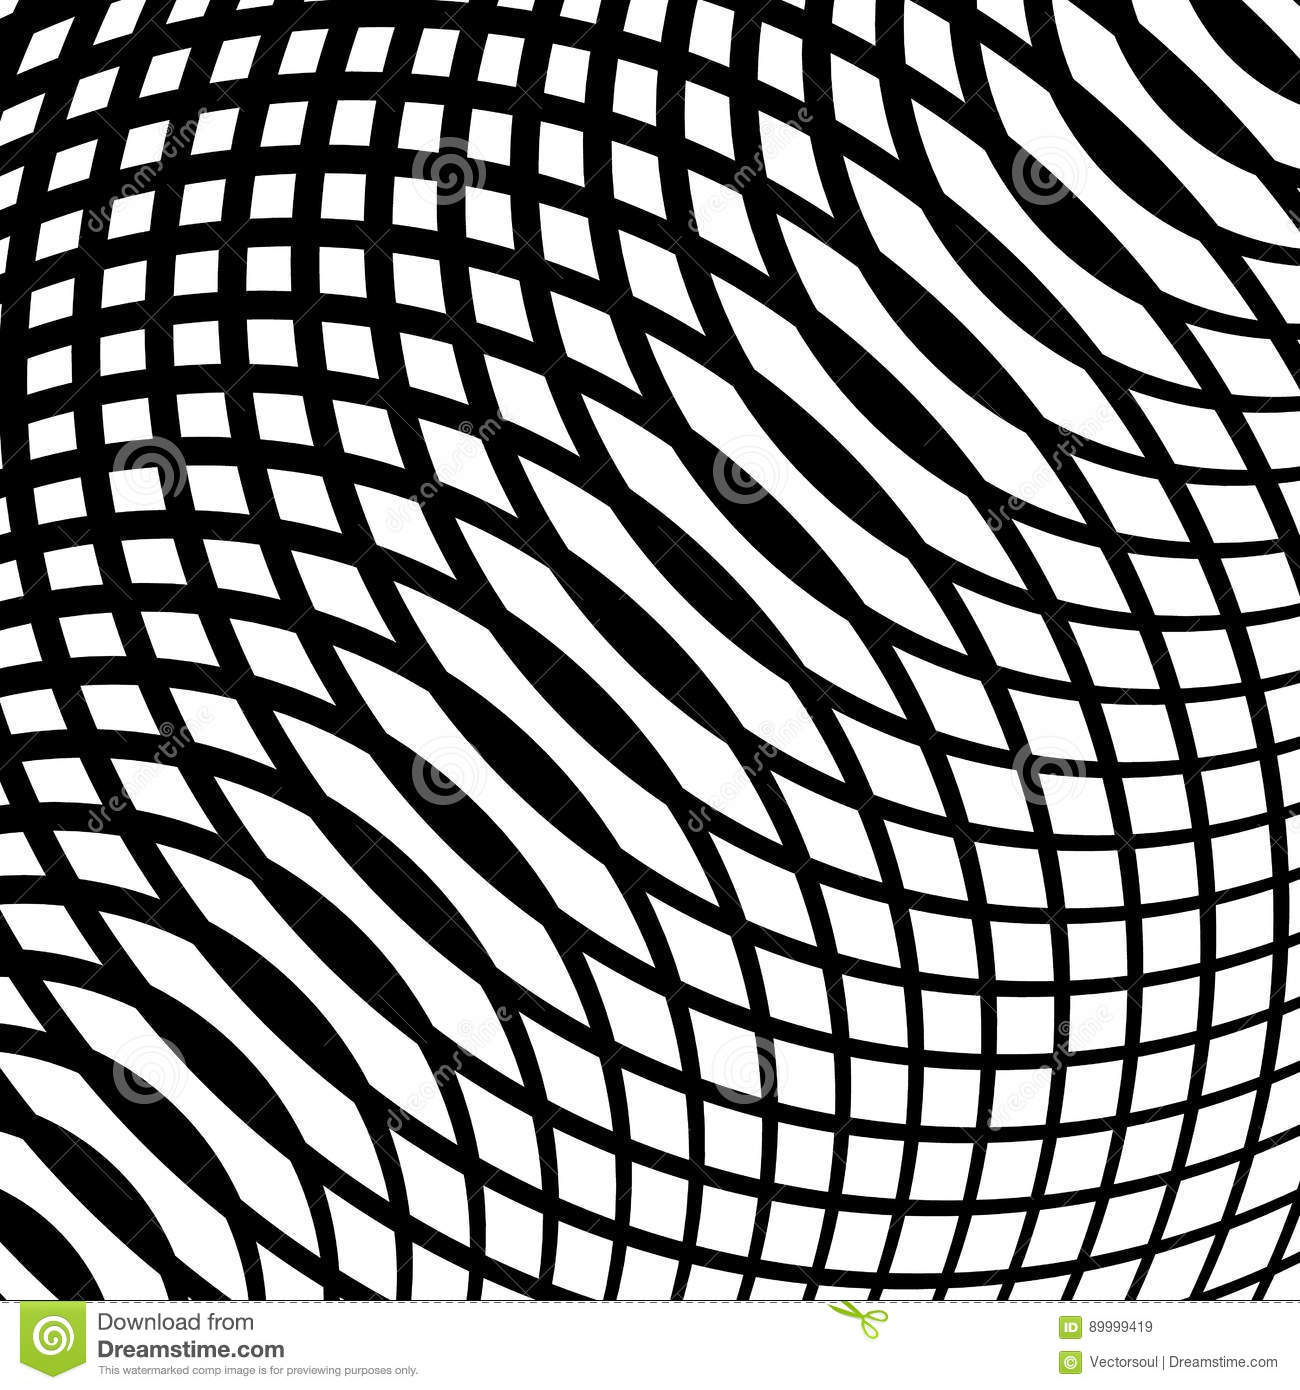 Grid, mesh of curved lines. Cellular moire effect. Abstract geom